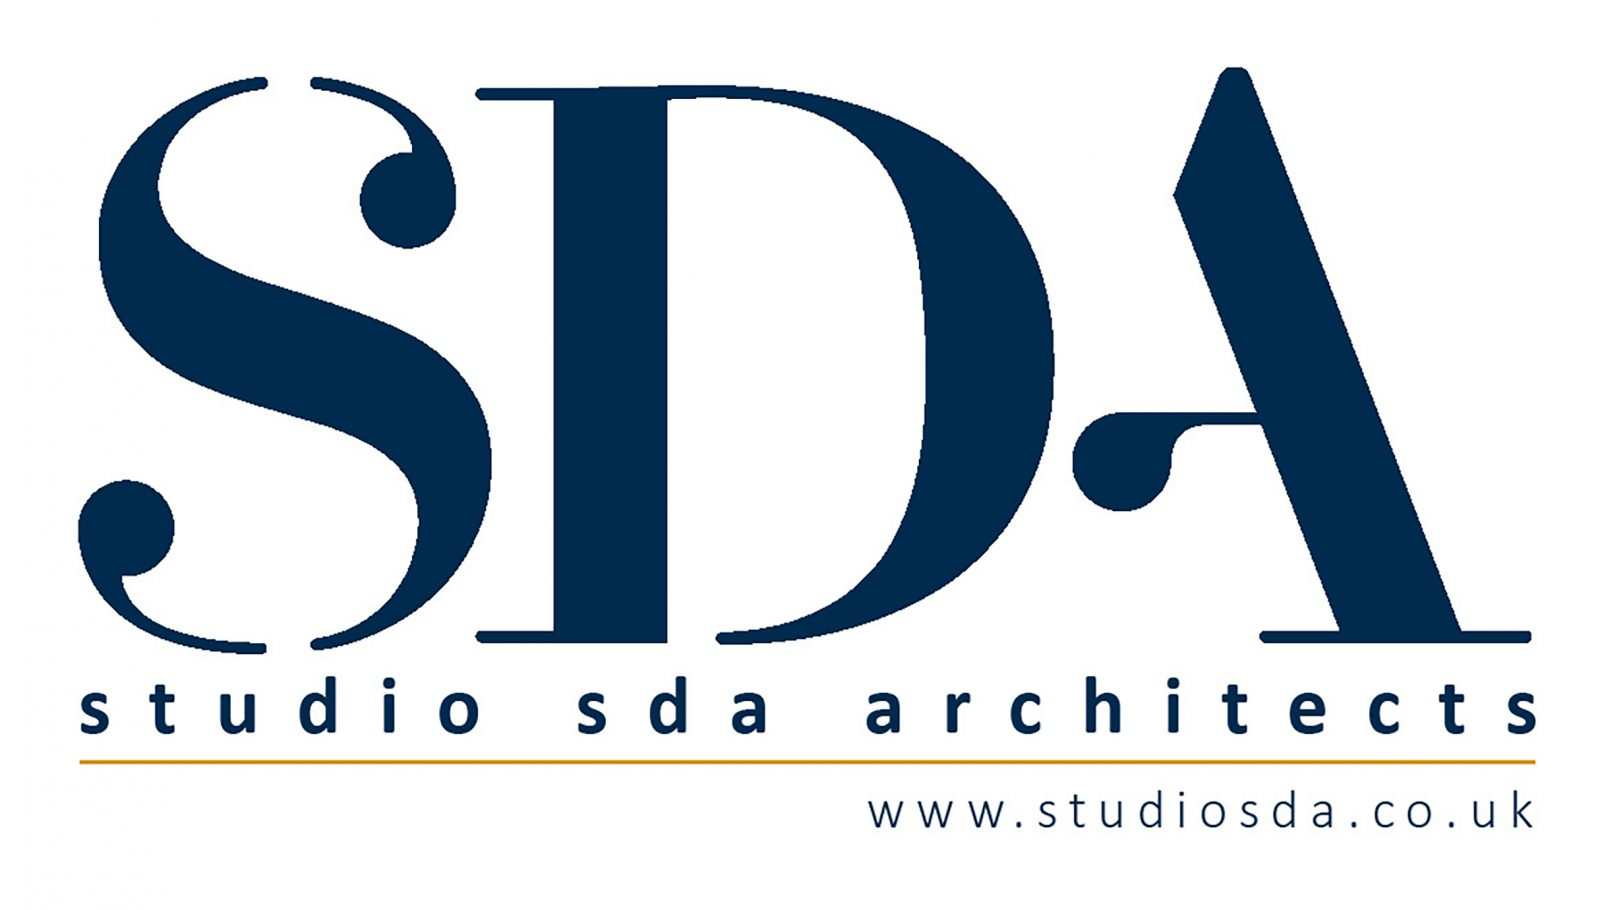 Studio SDA Architects sponsor the Ride to Wembley